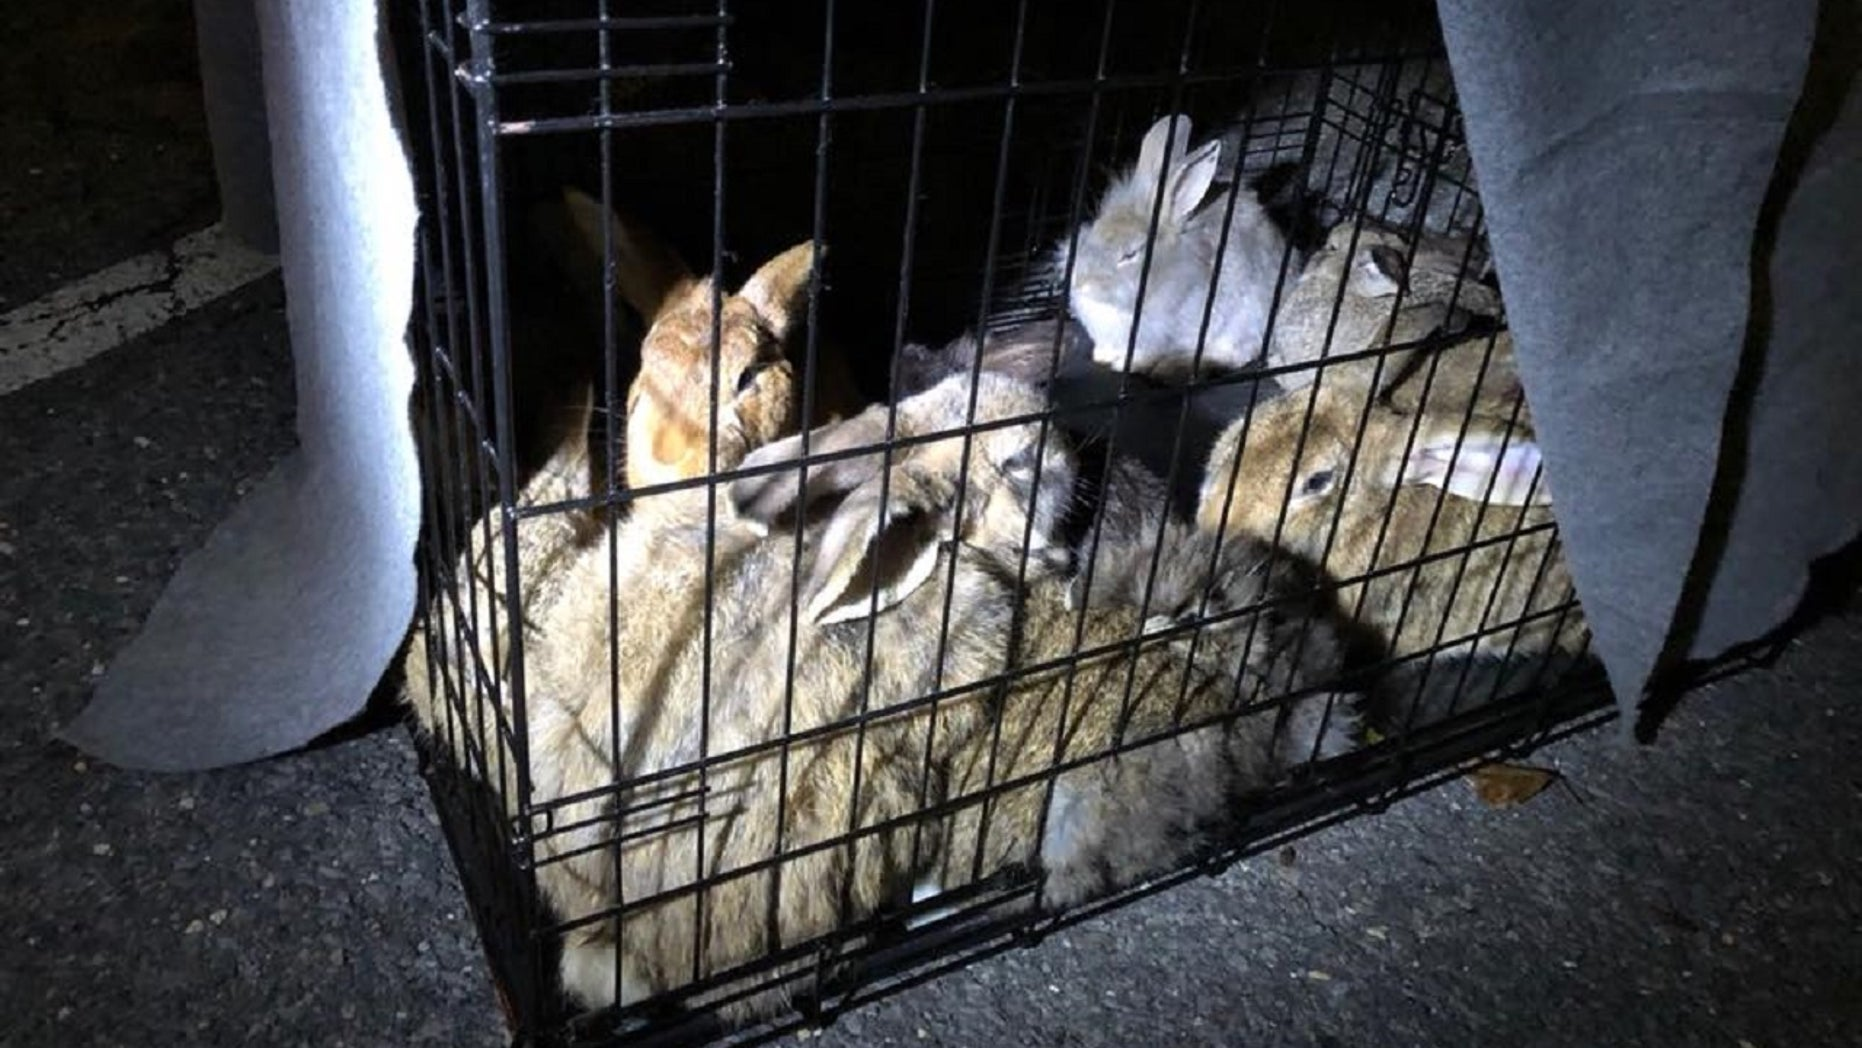 Twenty-eight domesticated rabbits were recently rescued around a train station in Ronkonkoma, Long Island.